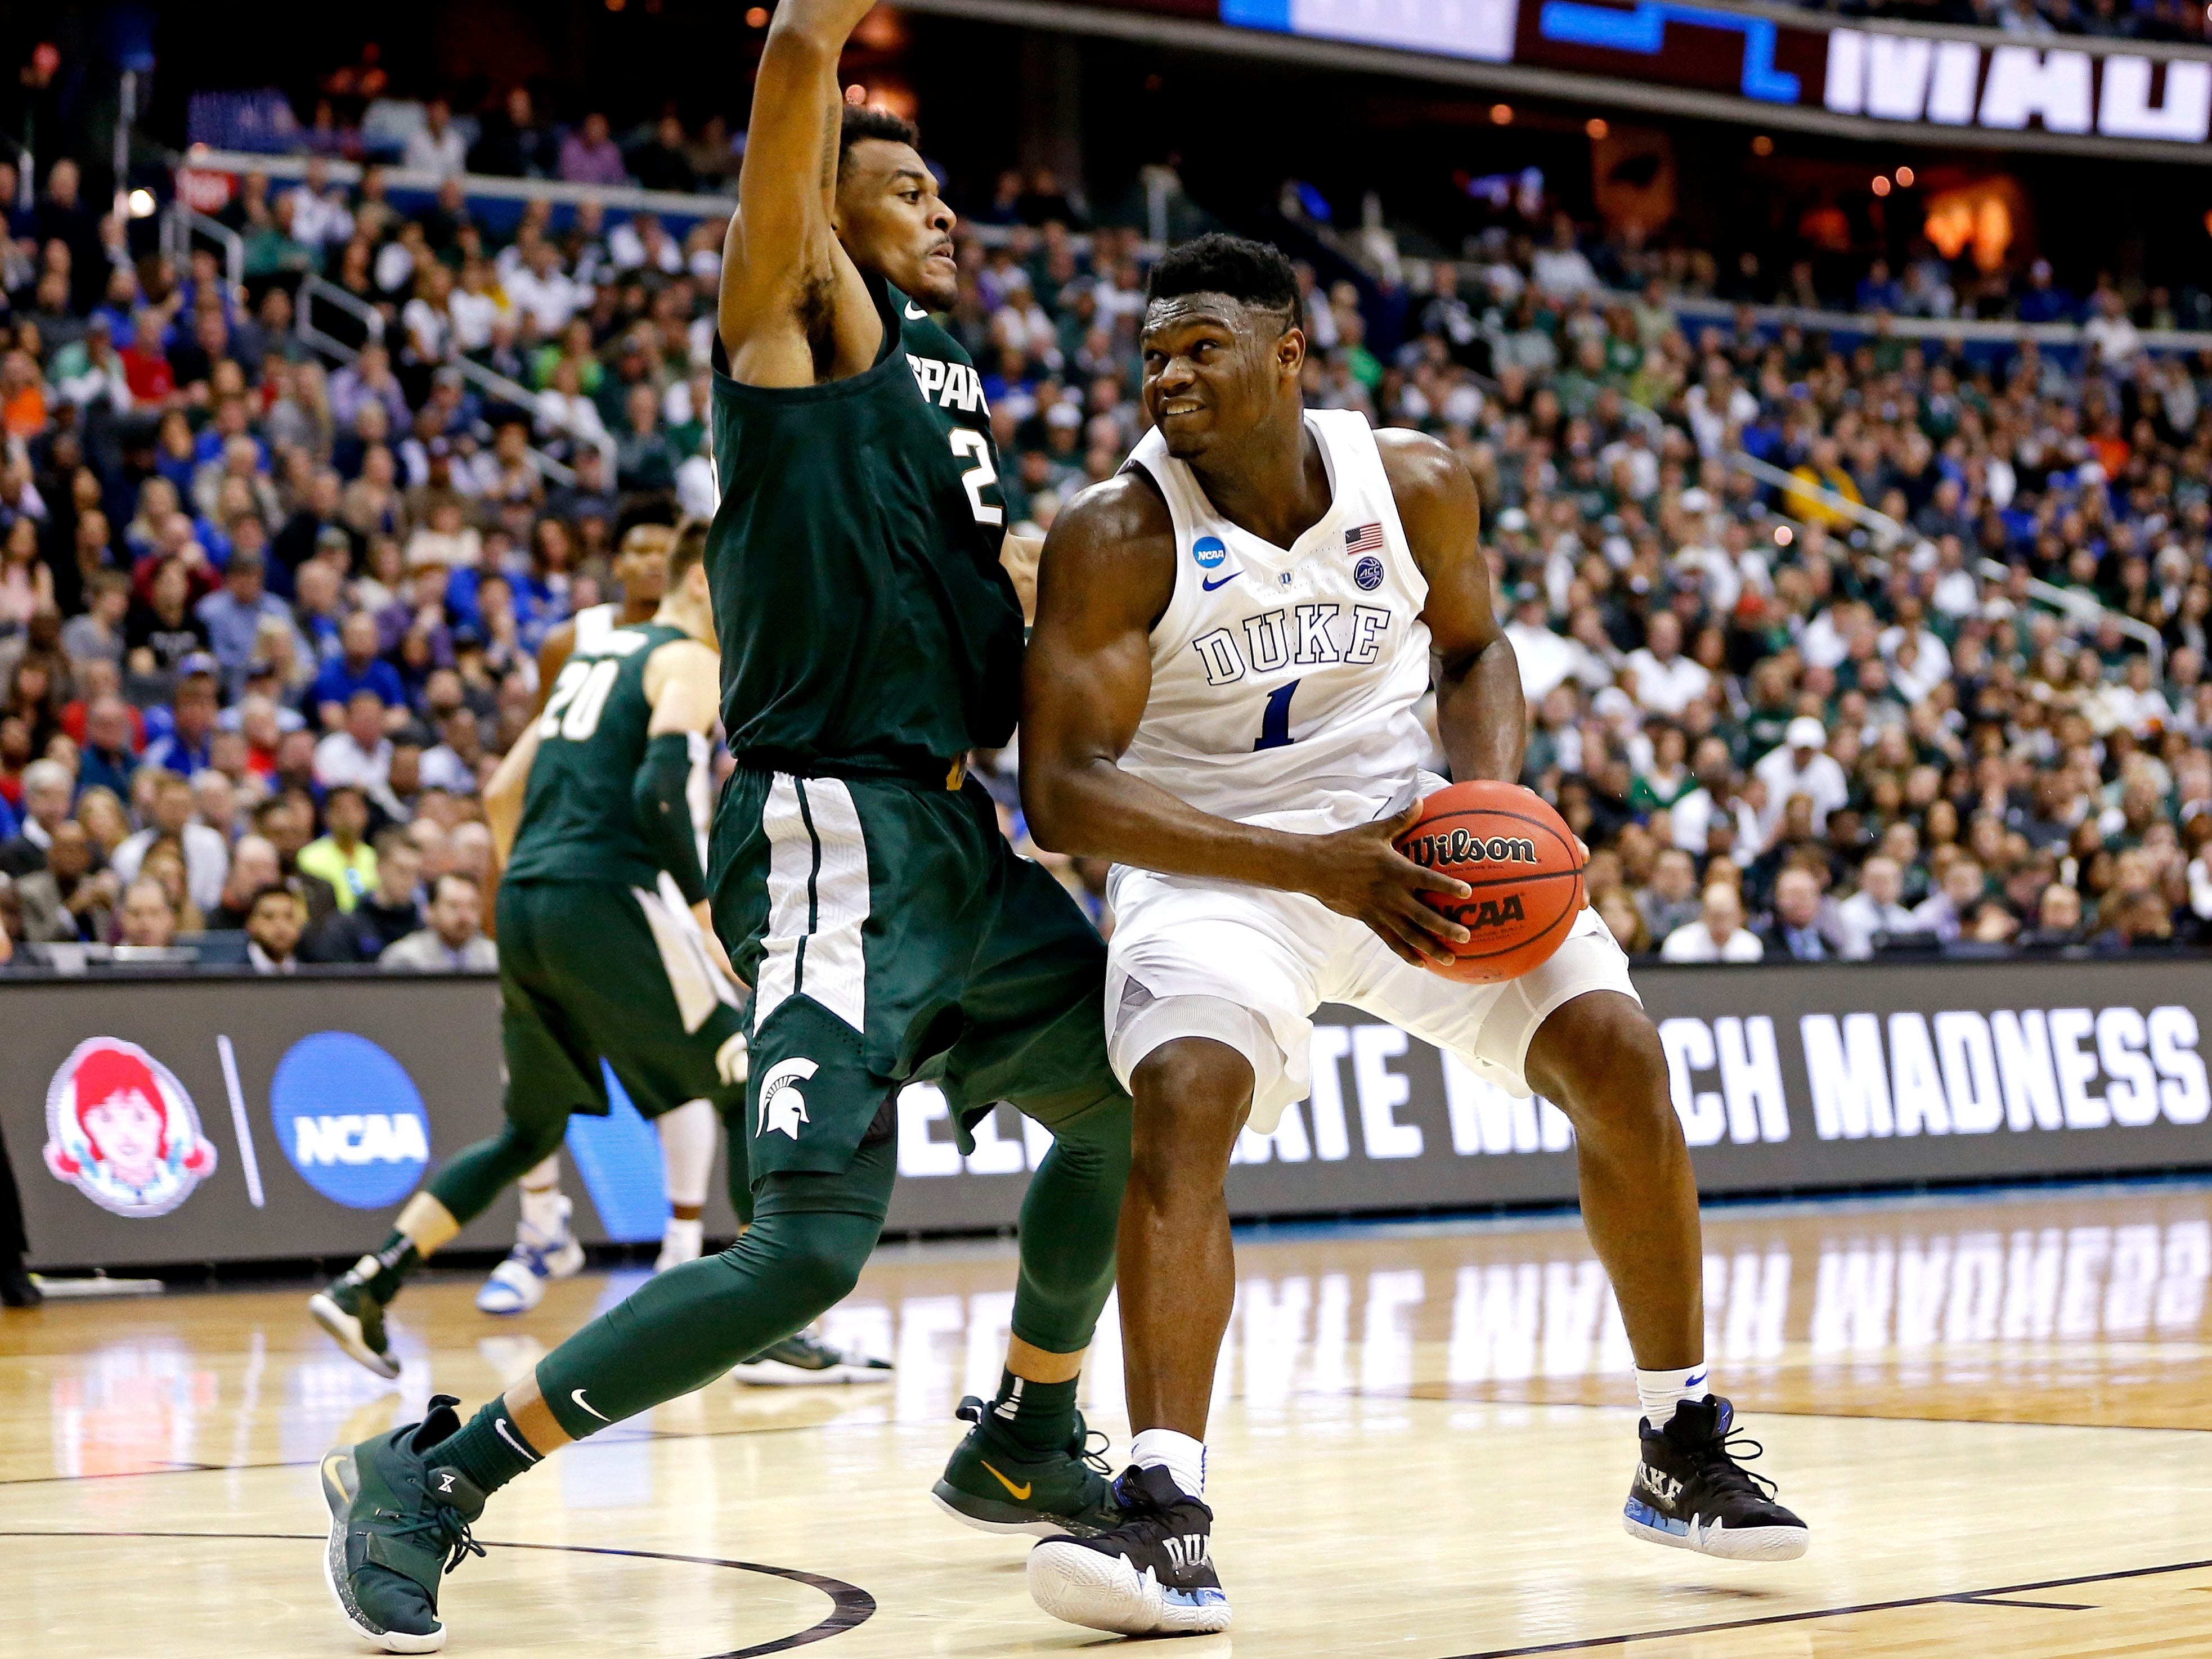 Mar 31, 2019; Washington, DC, USA; Duke Blue Devils forward Zion Williamson (1) drives to the basket against Michigan State Spartans forward Xavier Tillman (23) during the second half in the championship game of the east regional of the 2019 NCAA Tournament at Capital One Arena. Mandatory Credit: Amber Searls-USA TODAY Sports